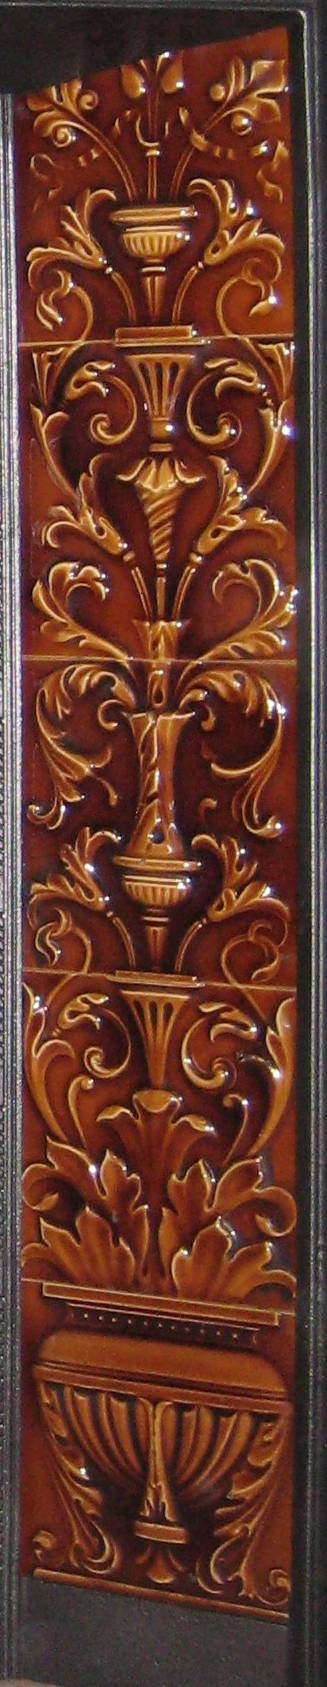 Antique Embossed Tile Set